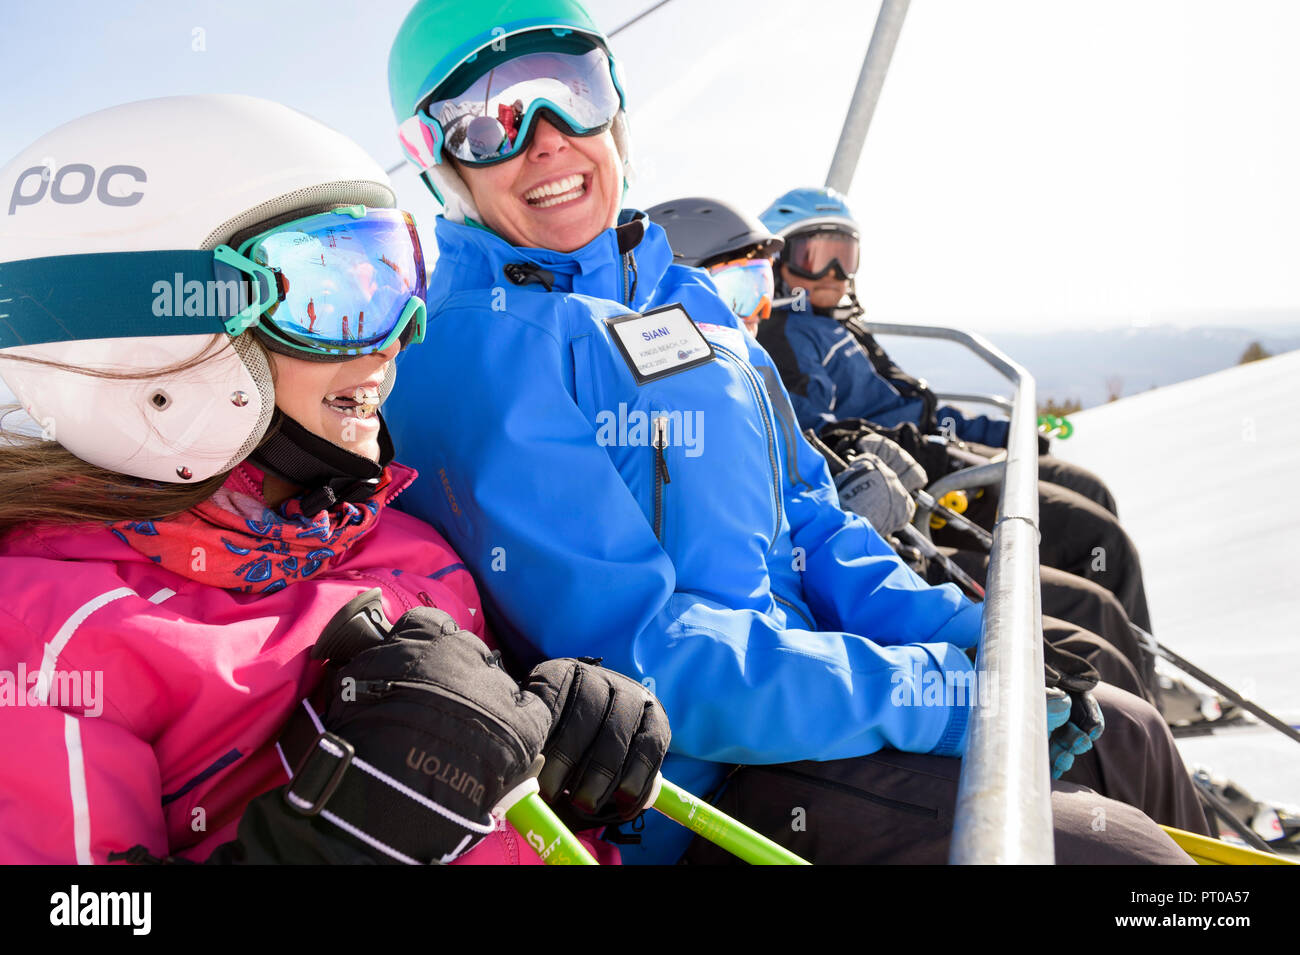 Ski instructor with kids during fun family ski lessons at Mt. Rose Ski Tahoe, the closest Lake Tahoe ski resort to Reno, Nevada, USA. Stock Photo